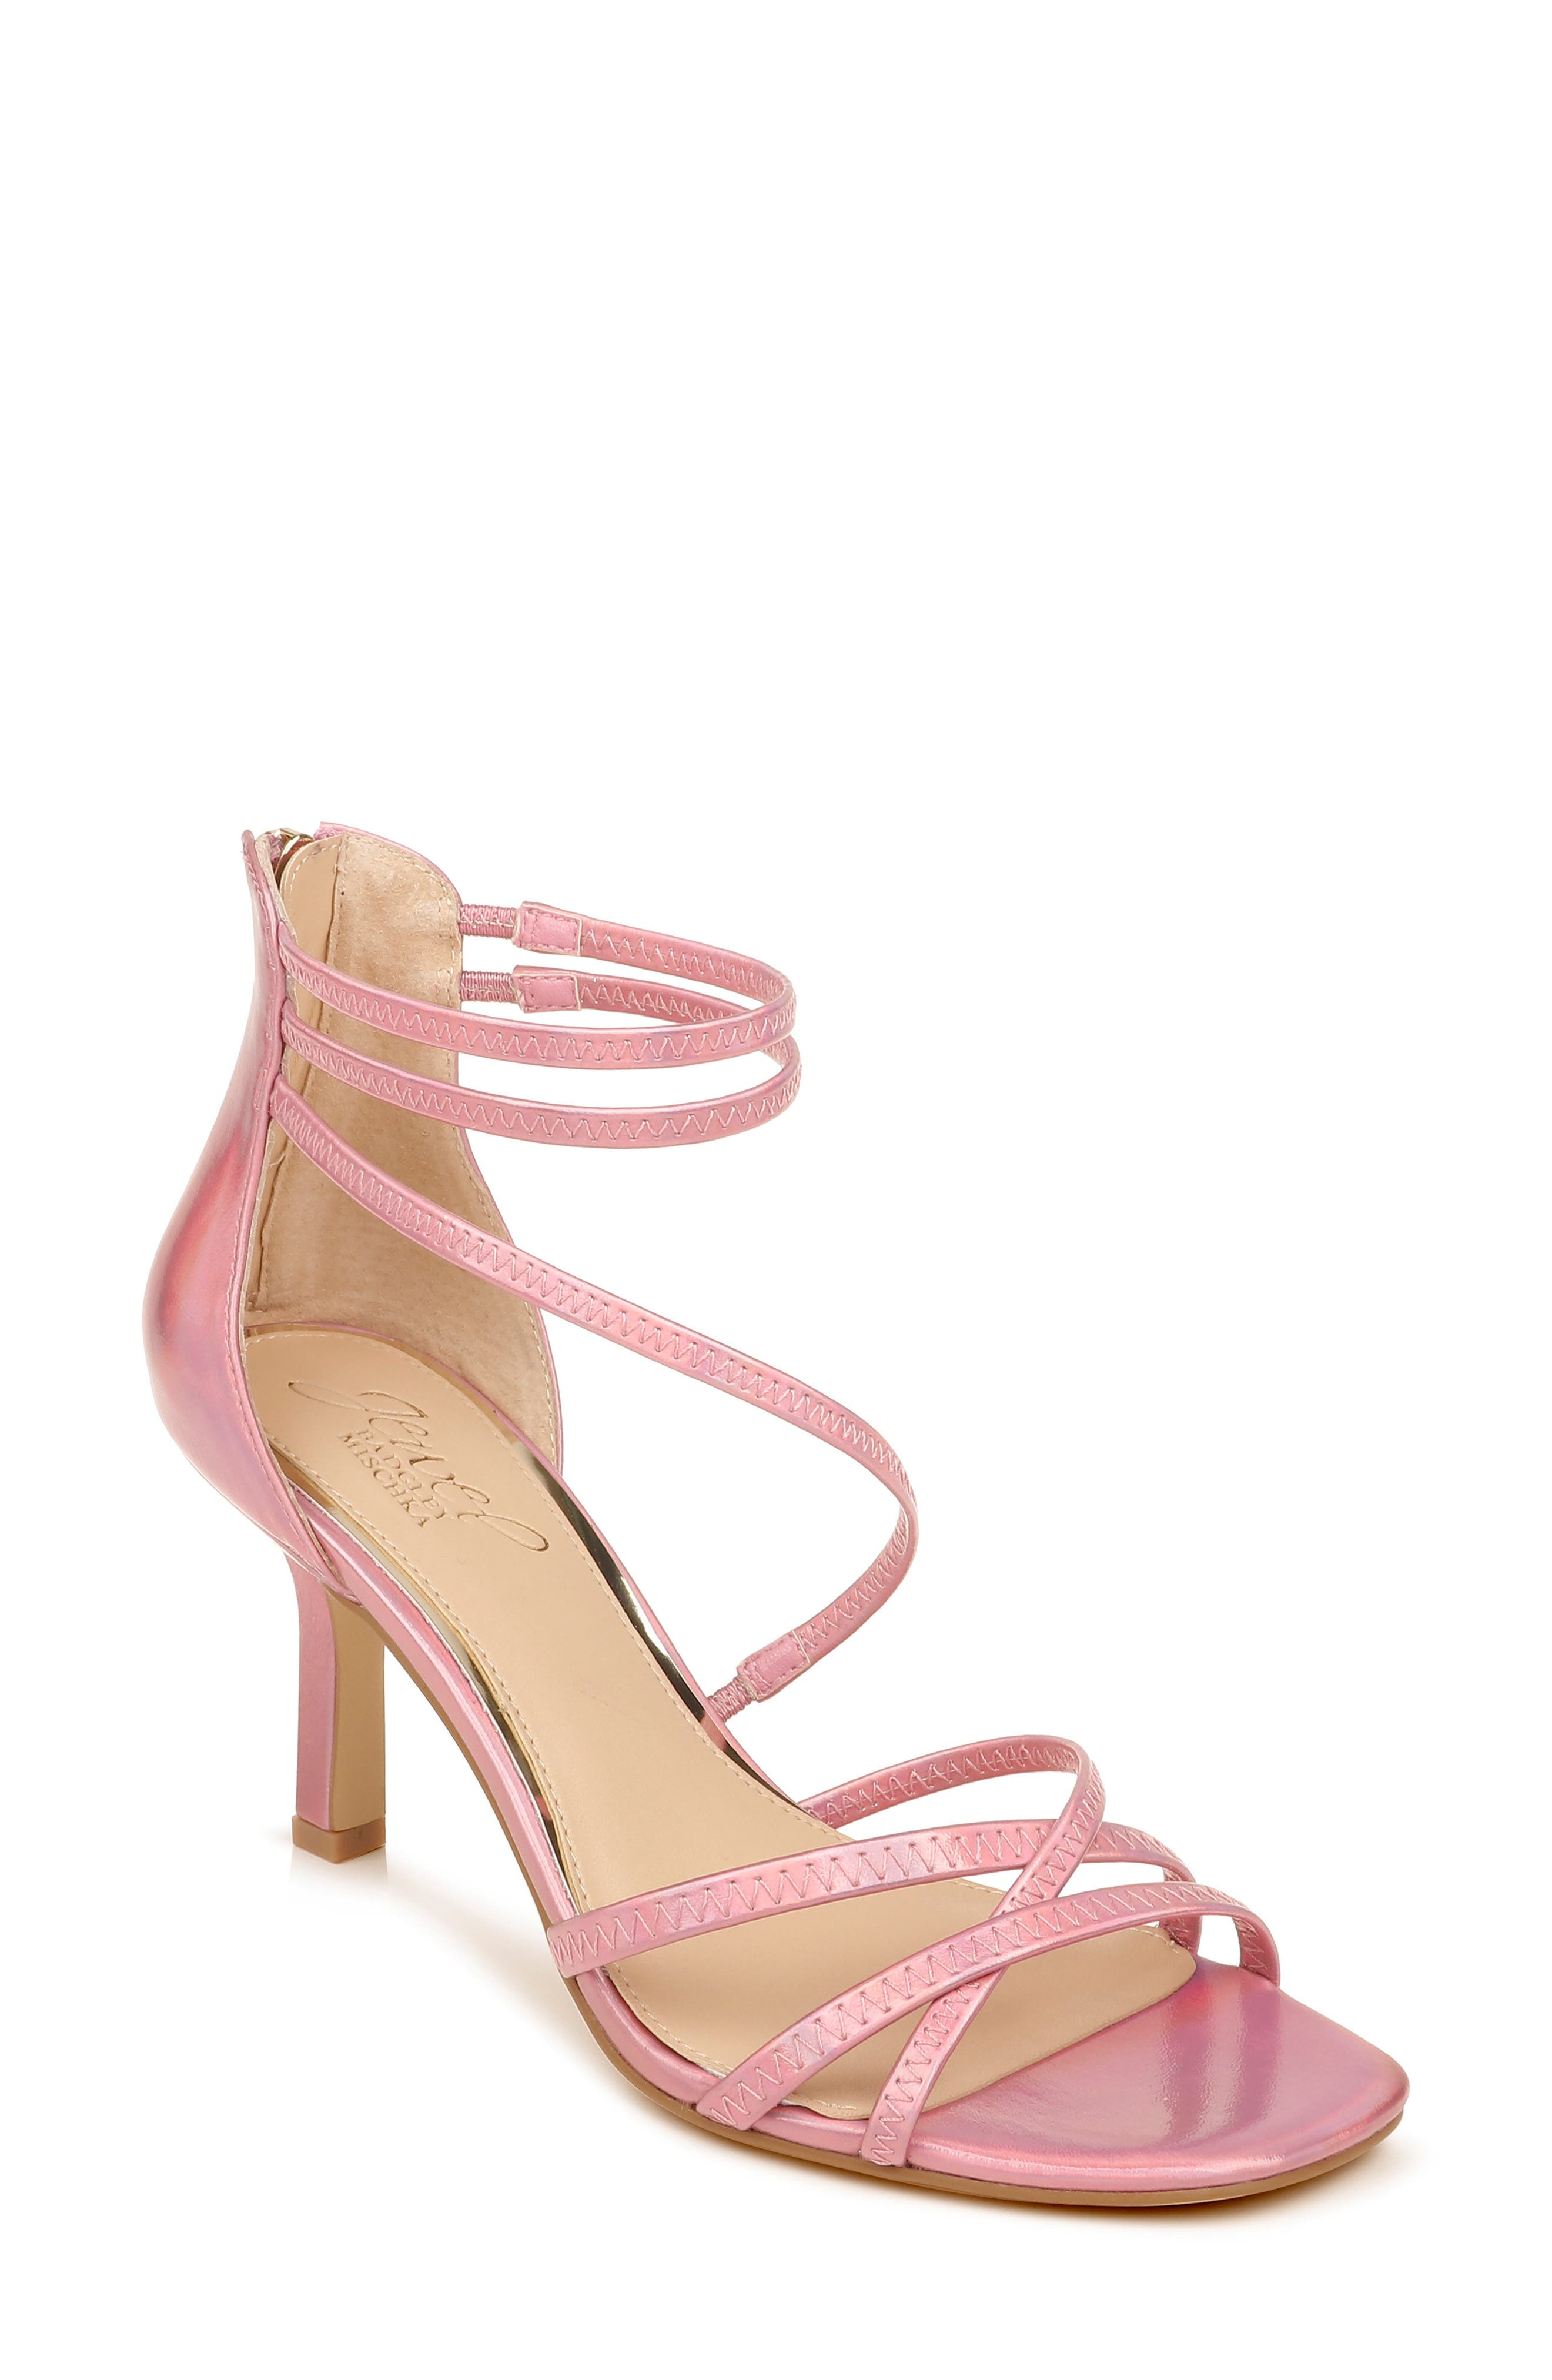 Slender straps wrap around the ankle and across the vamp of an elegant sandal lifted by a classically tapered heel. Style Name: Jewel Badgley Mischka Flor Strappy Sandal (Women). Style Number: 6035021. Available in stores.